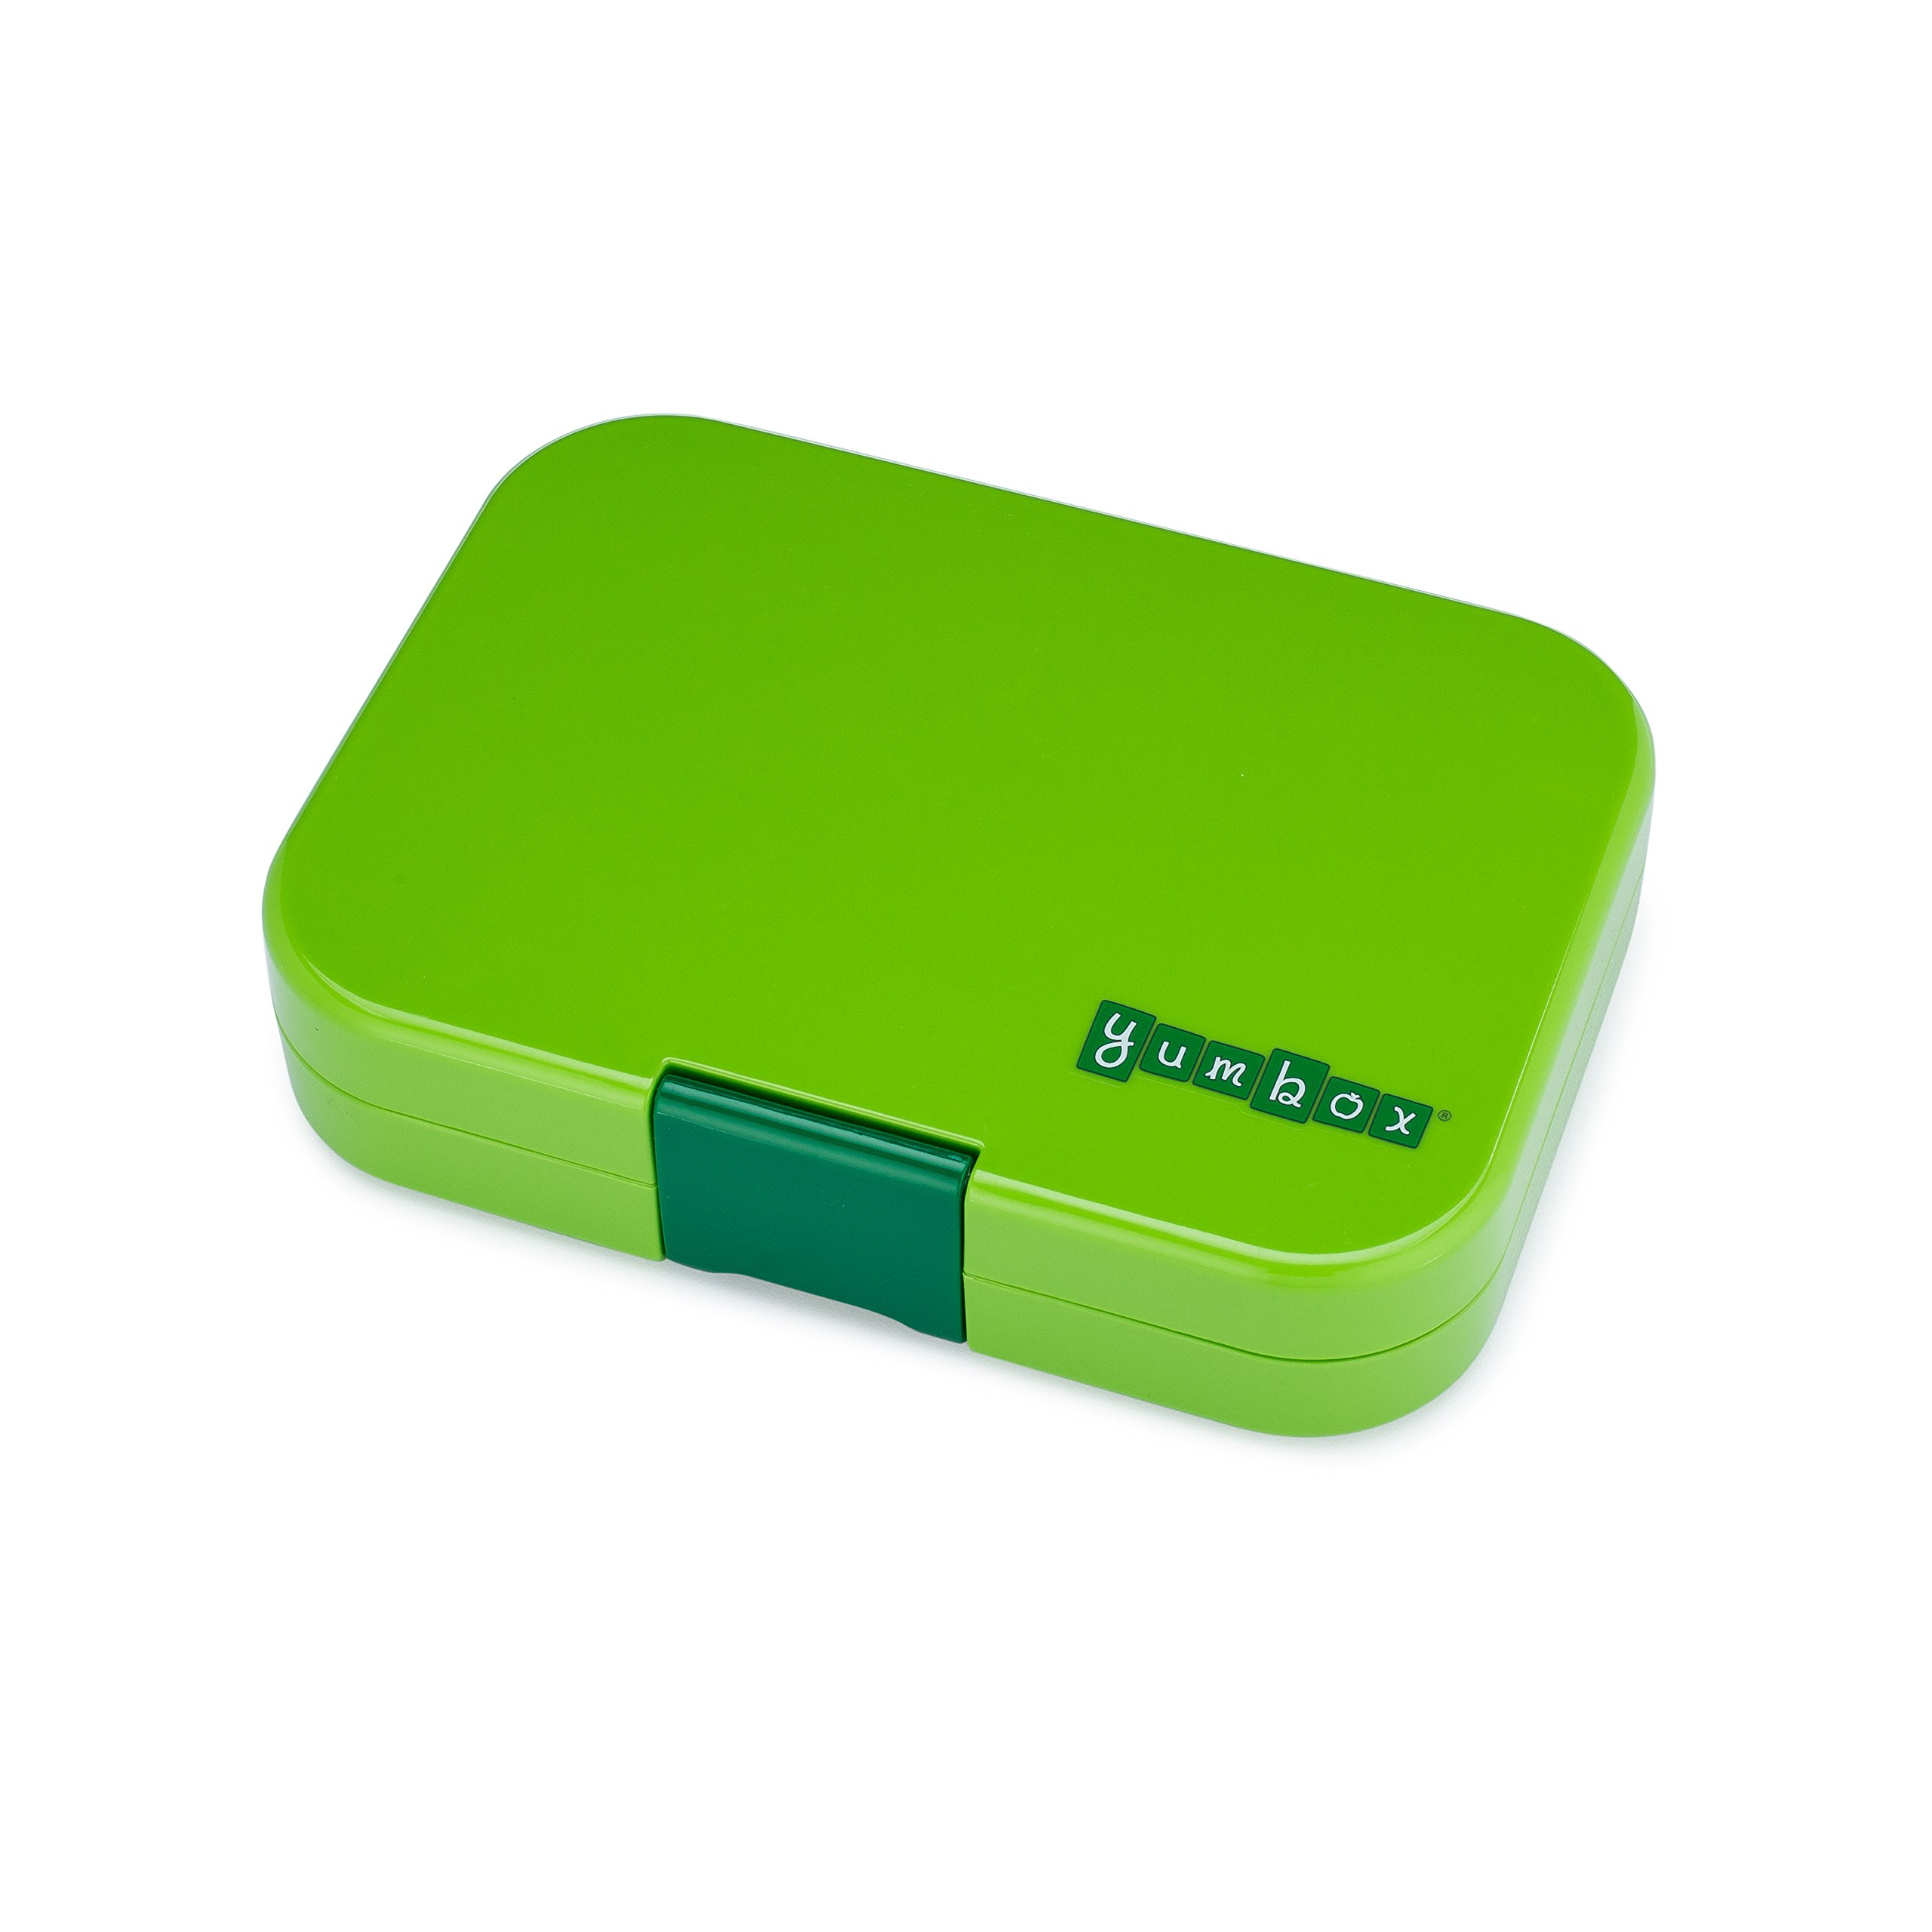 YUMBOX Original (Avocado Green) Leakproof Bento Lunch Box Container for Kids: Bento-style lunch box offers Durable, Leak-proof, On-the-go Meal and Snack Packing by Yumbox (Image #4)